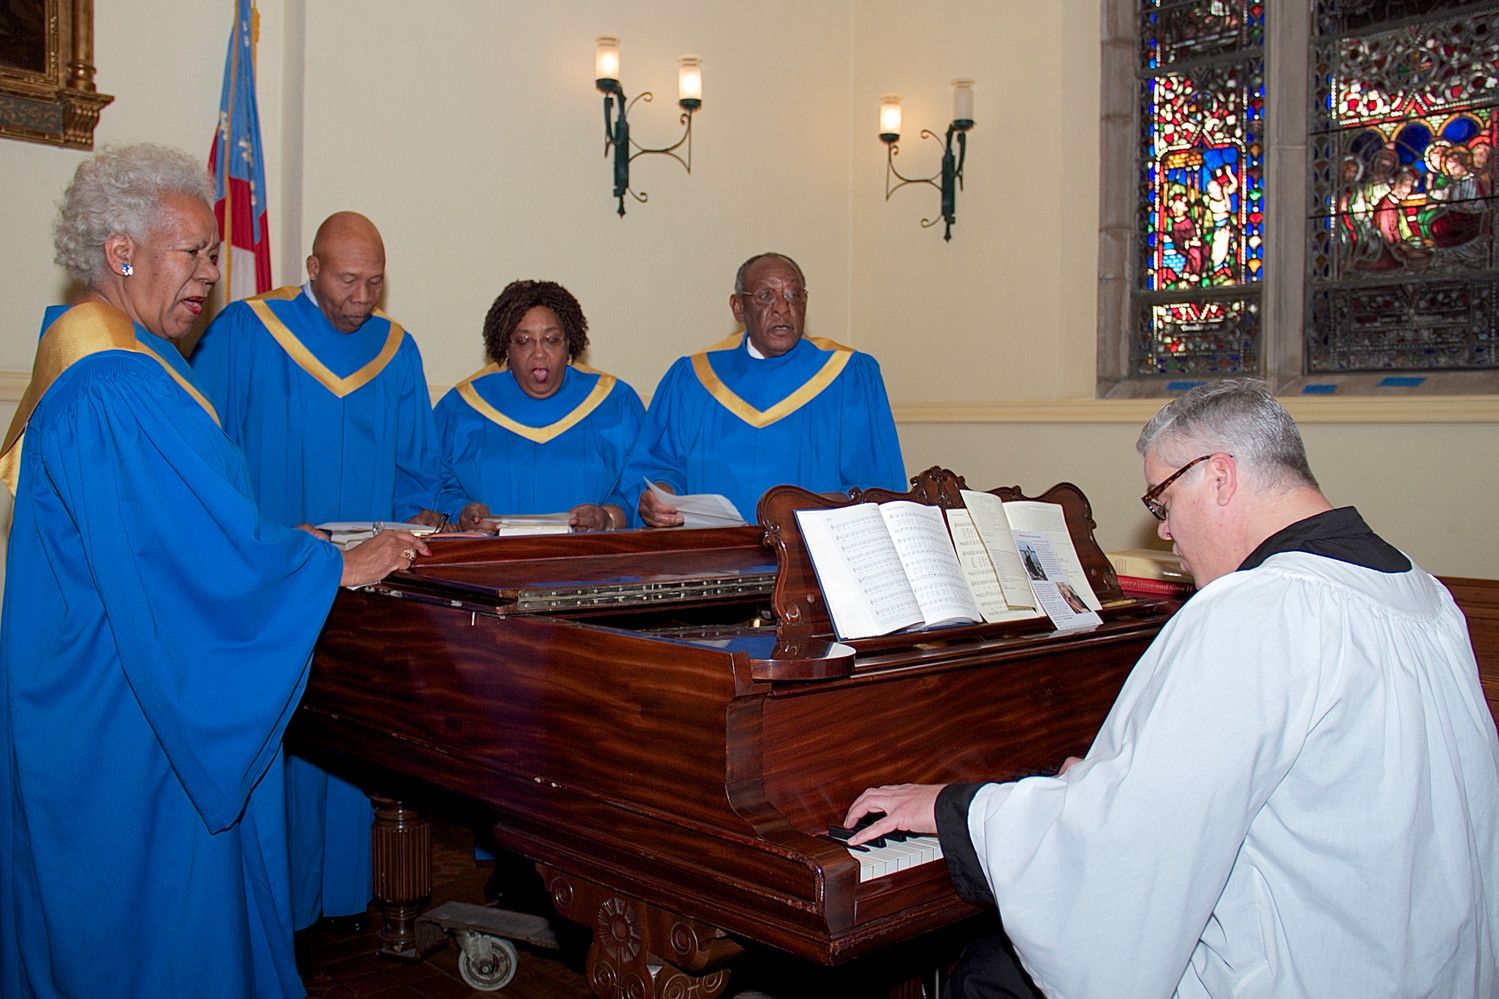 Anthony Teets, choir director of Hood AME Zion Church, accompanied and joined in singing a hymn with, from left, Sandra Rogers, Woody Vann, Viola Carter and Jay Green at Christ Church.